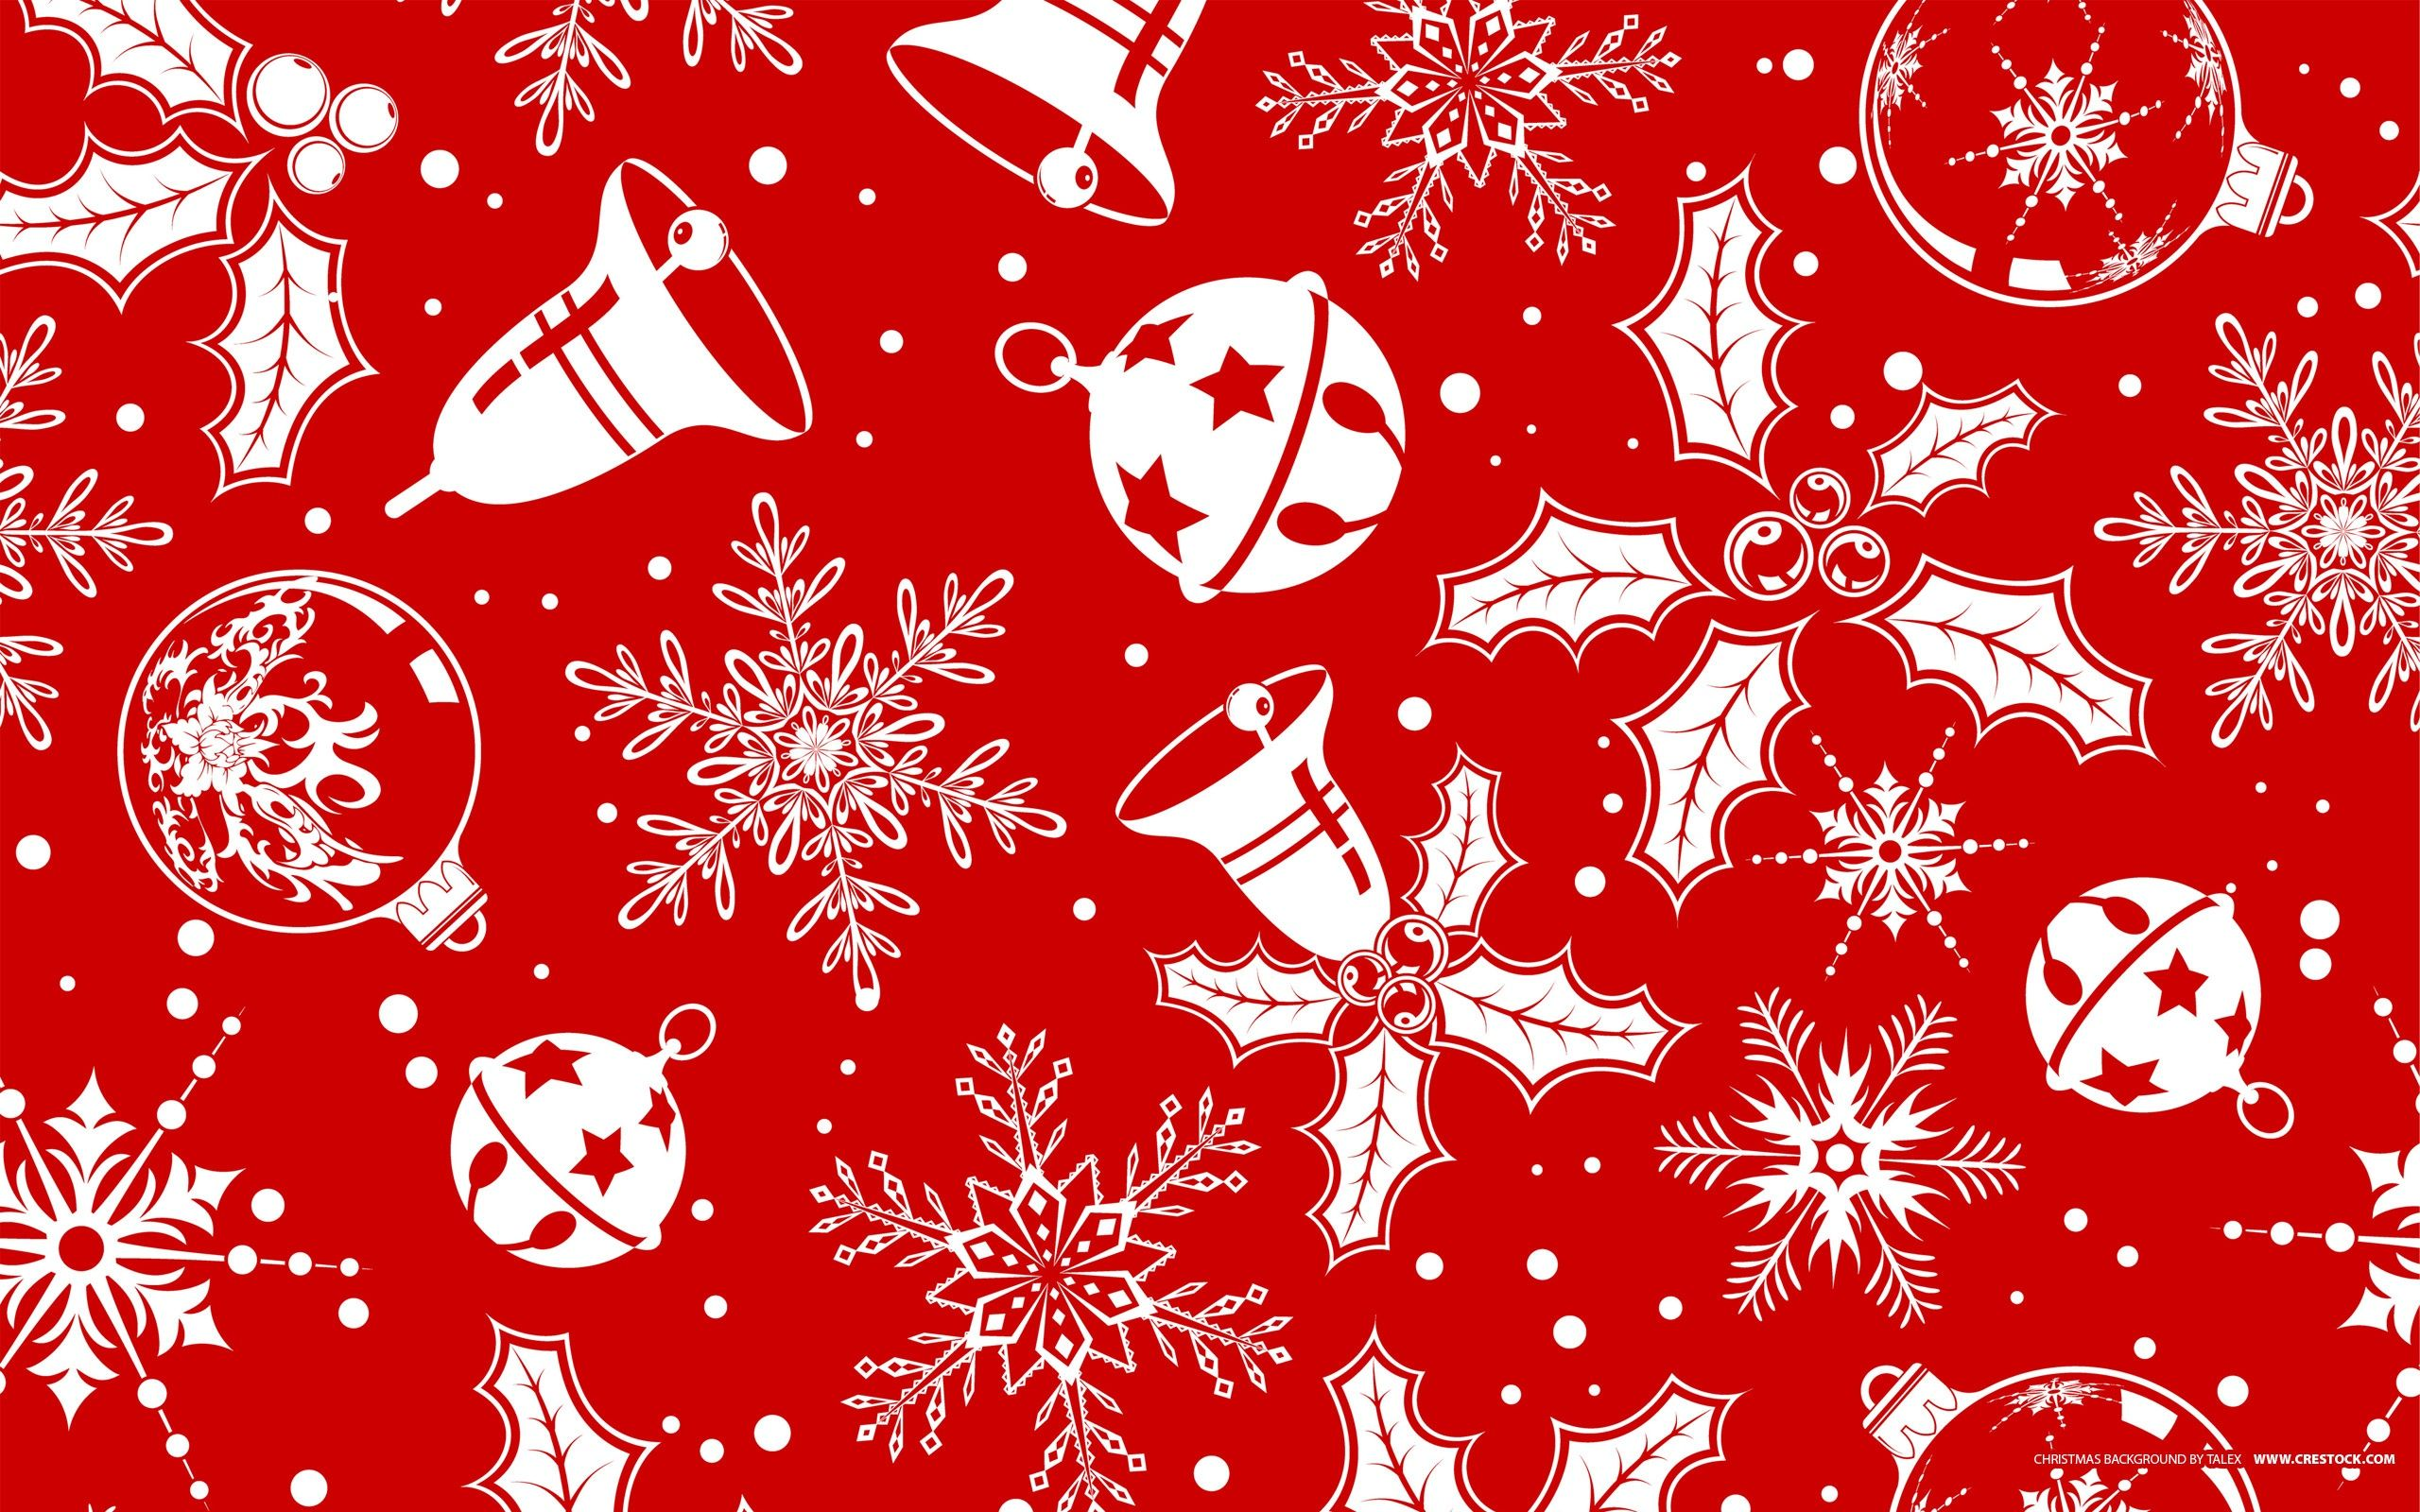 Merry Christmas 2015 Red Background wallpaper CHRISTMAS 2560x1600